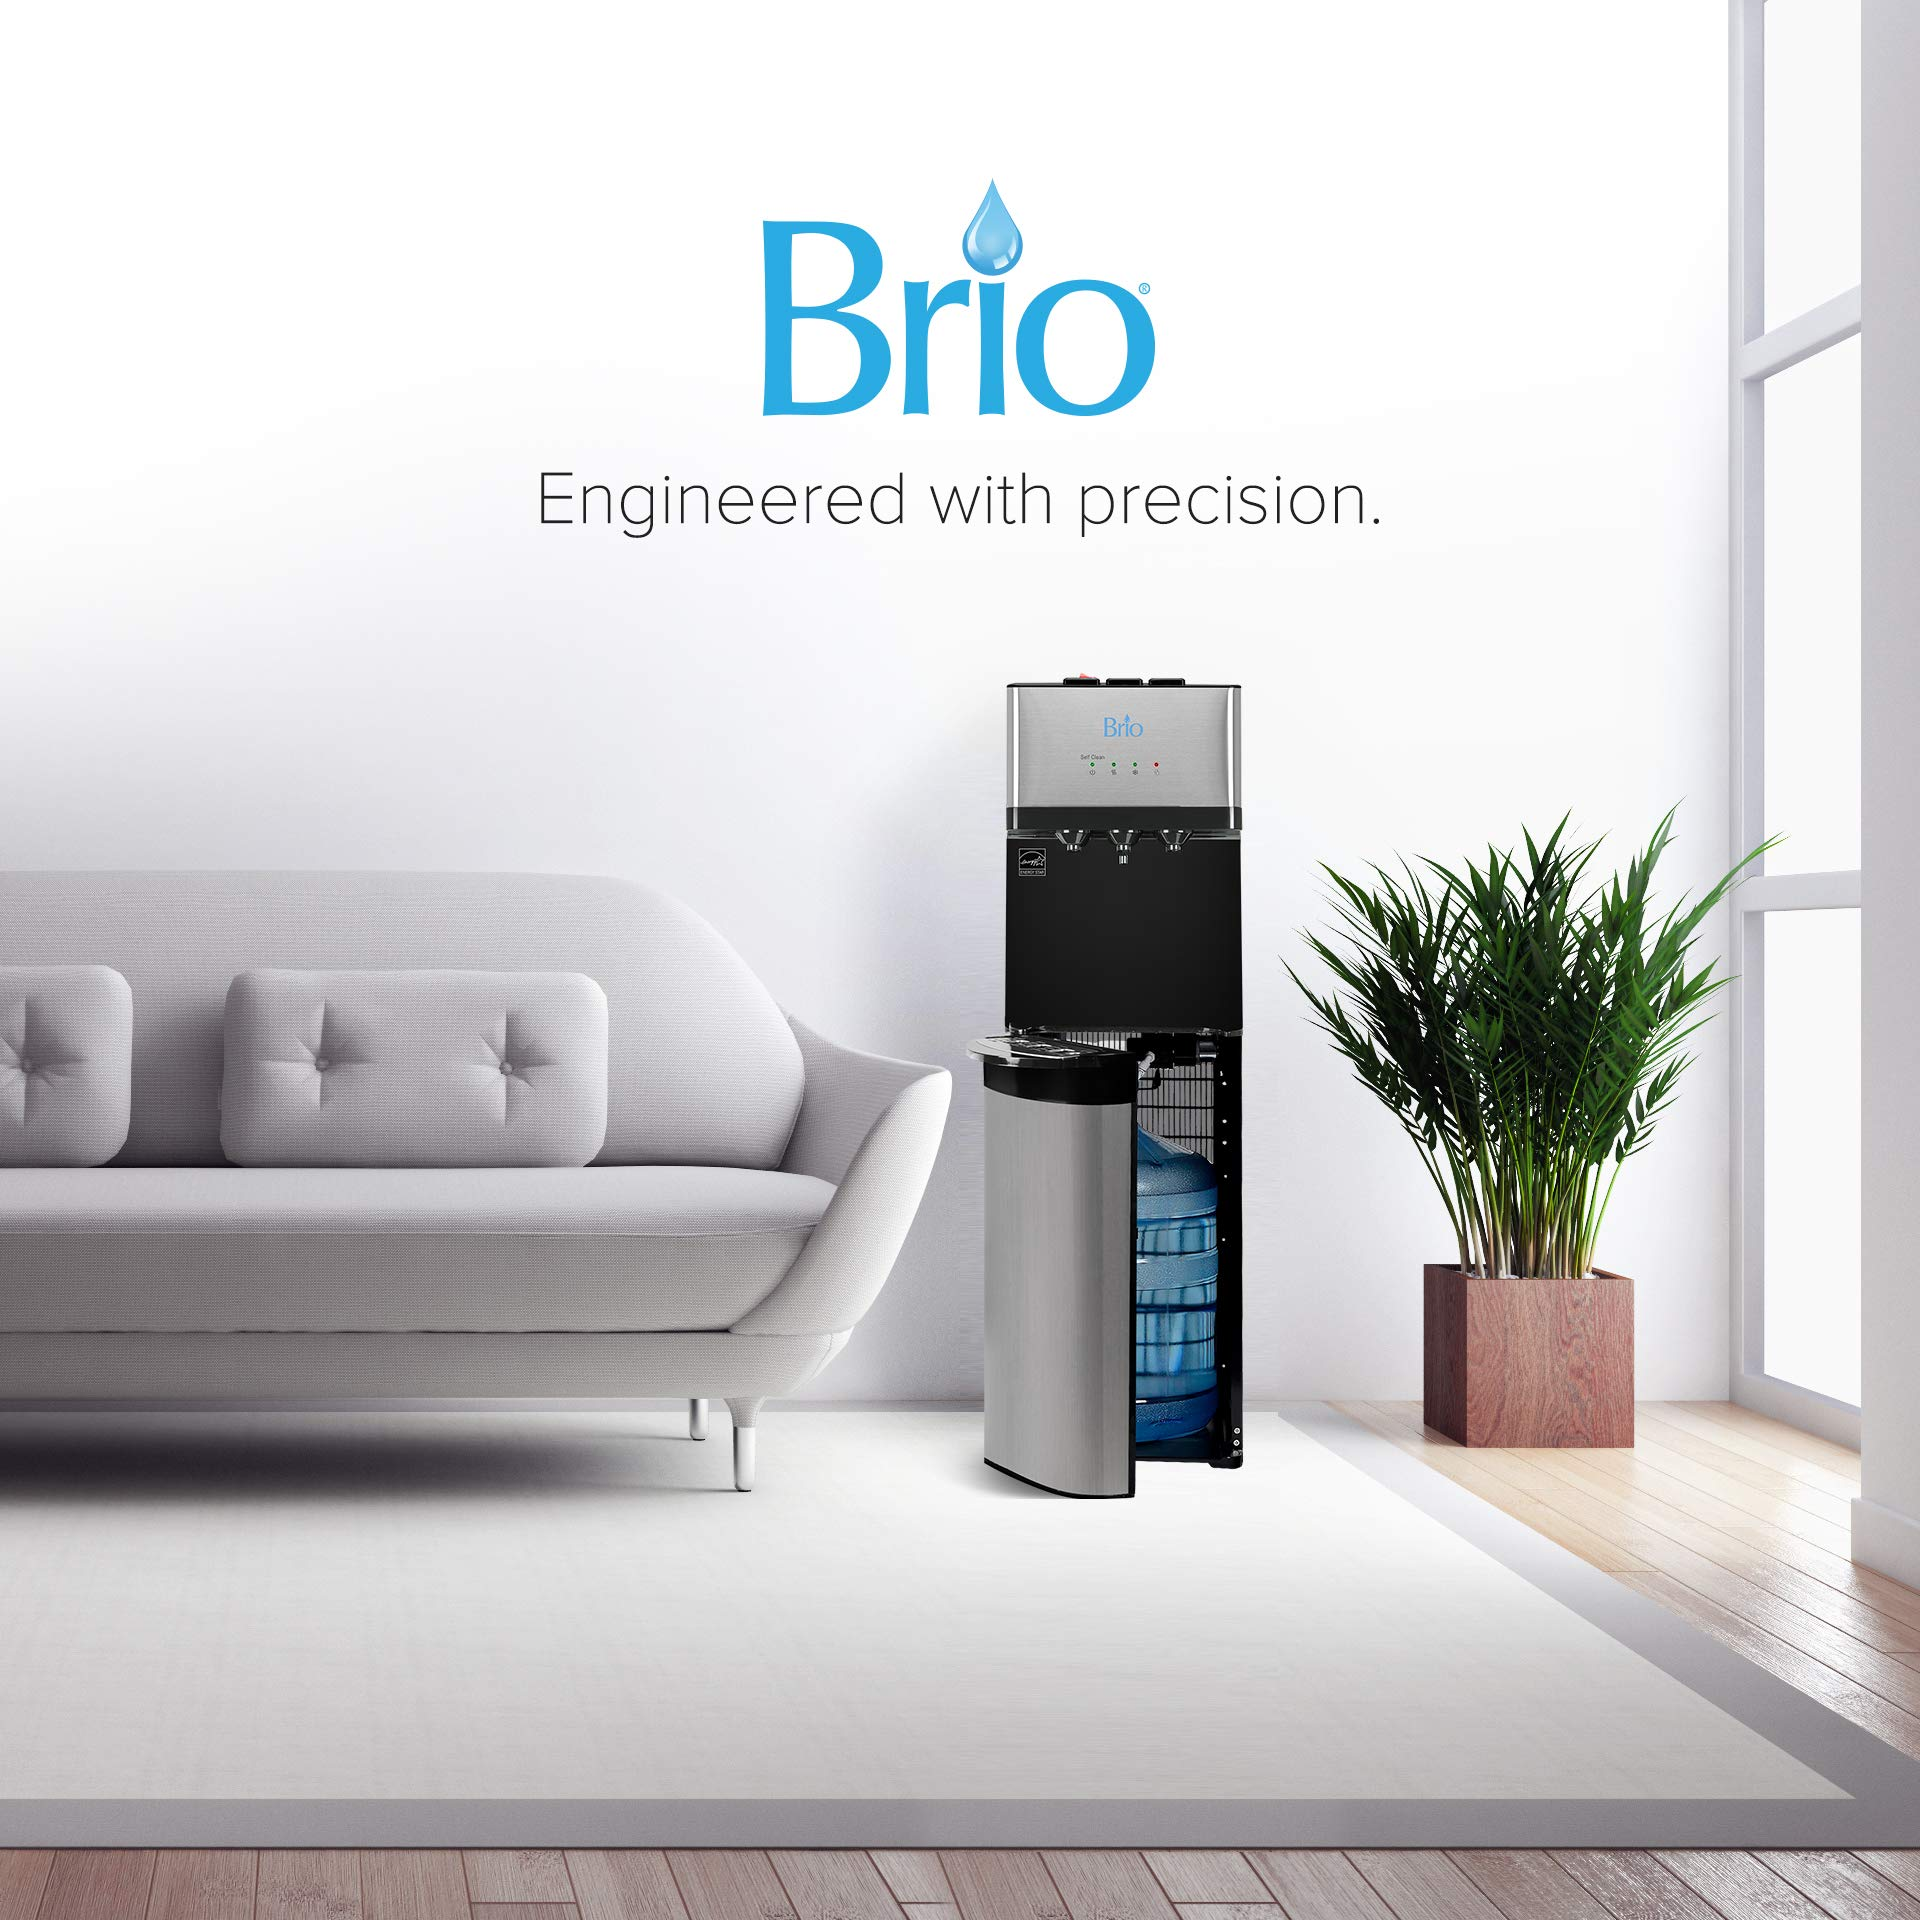 Brio Self Cleaning Bottom Loading Water Cooler Water Dispenser - Limited Edition - 3 Temperature Settings - Hot, Cold & Cool Water - UL/Energy Star Approved by Brio (Image #5)